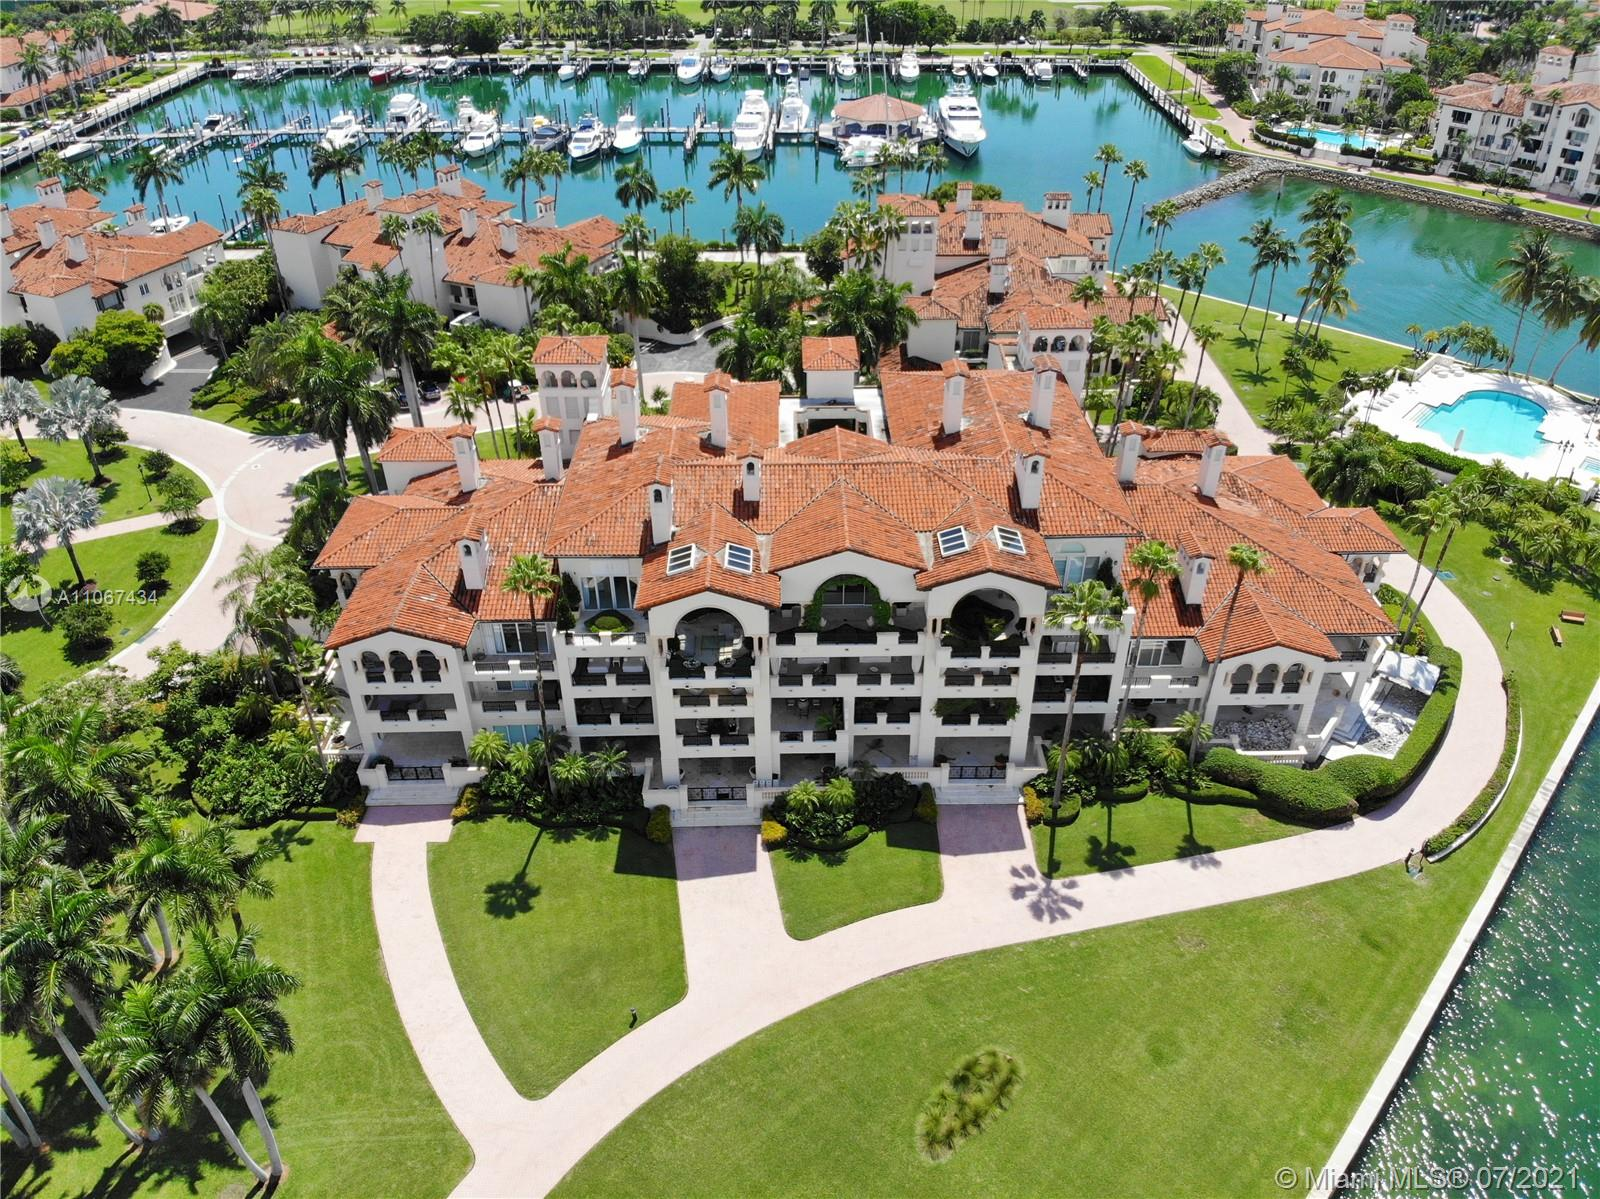 Experience Fisher Island at it's finest. Amazing double unit that was combined into a single stunning unit that encompasses the whole third floor. It has 5 bedrooms, 6 bathrooms, powder room, a movie theater and a staff quarters complete with a staff bathroom. Stunning views from this magnificent unit located in one of the most sought off buildings in Fisher Island. Enjoy breathtaking views of the ocean and the downtown Miami skyline. Amazing balcony with over 3,000 sqft of direct ocean view. Unit comes with 4 parking spots.